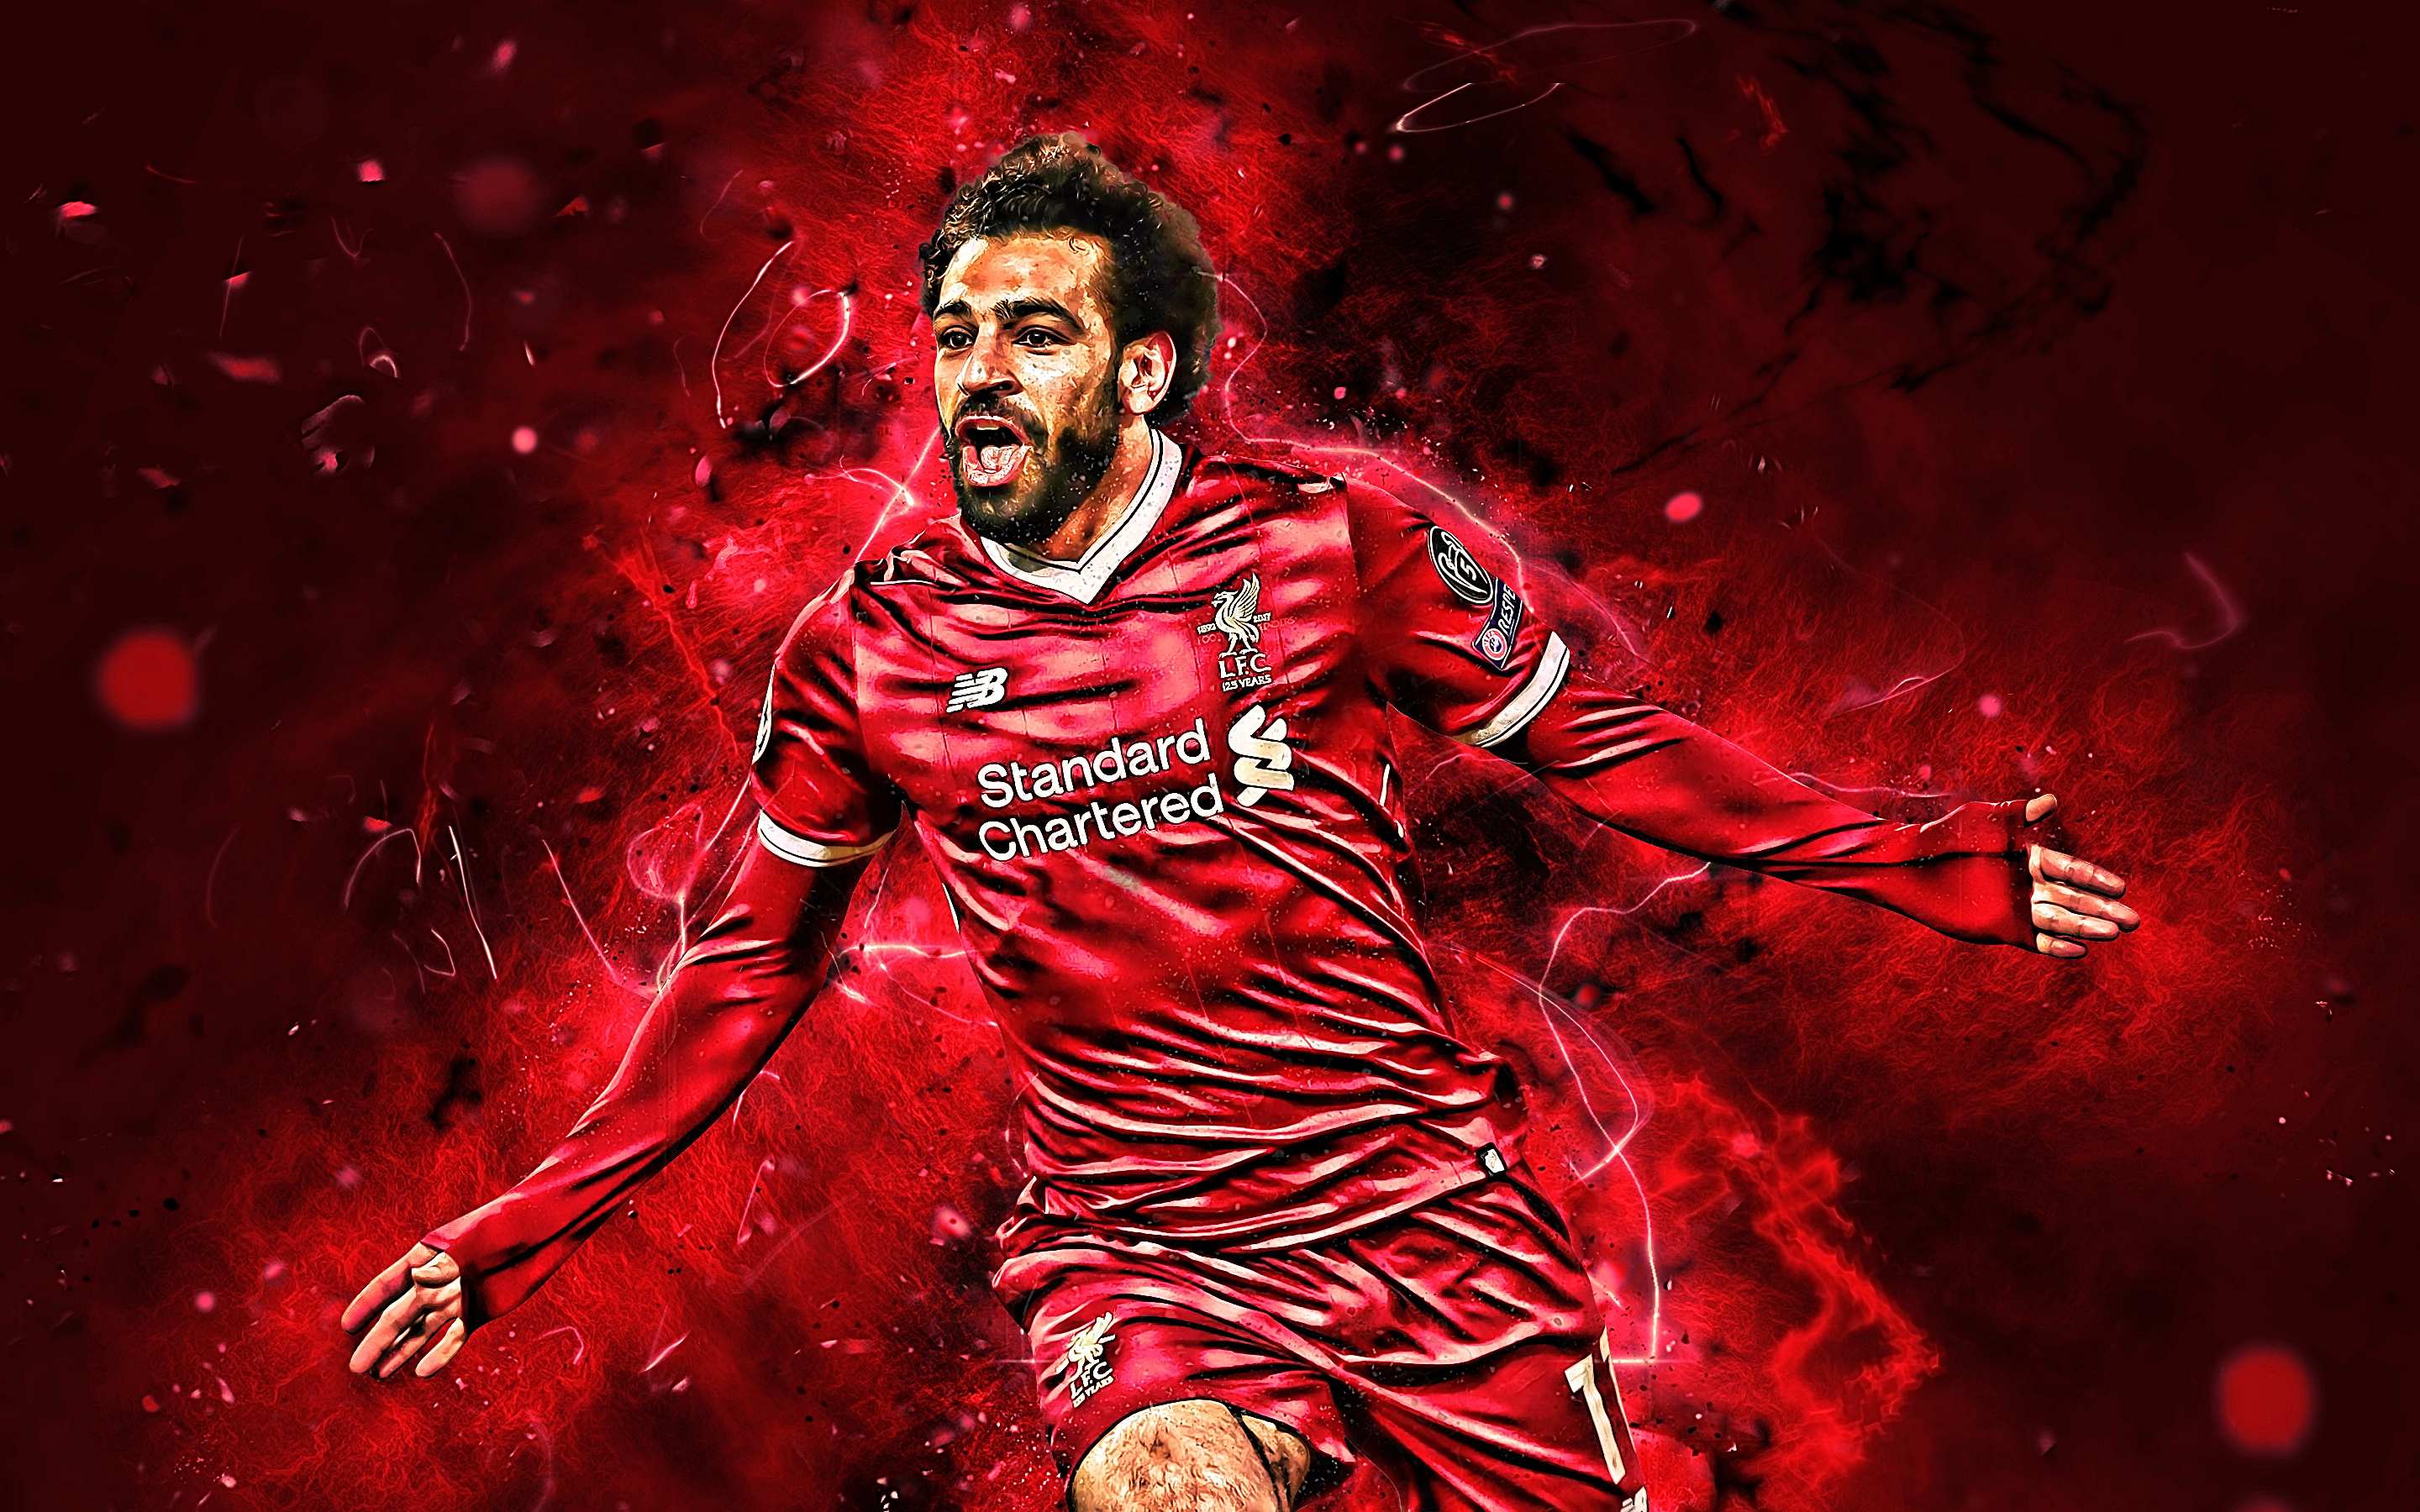 Mohamed Salah Ghaly Hd Wallpaper Background Image